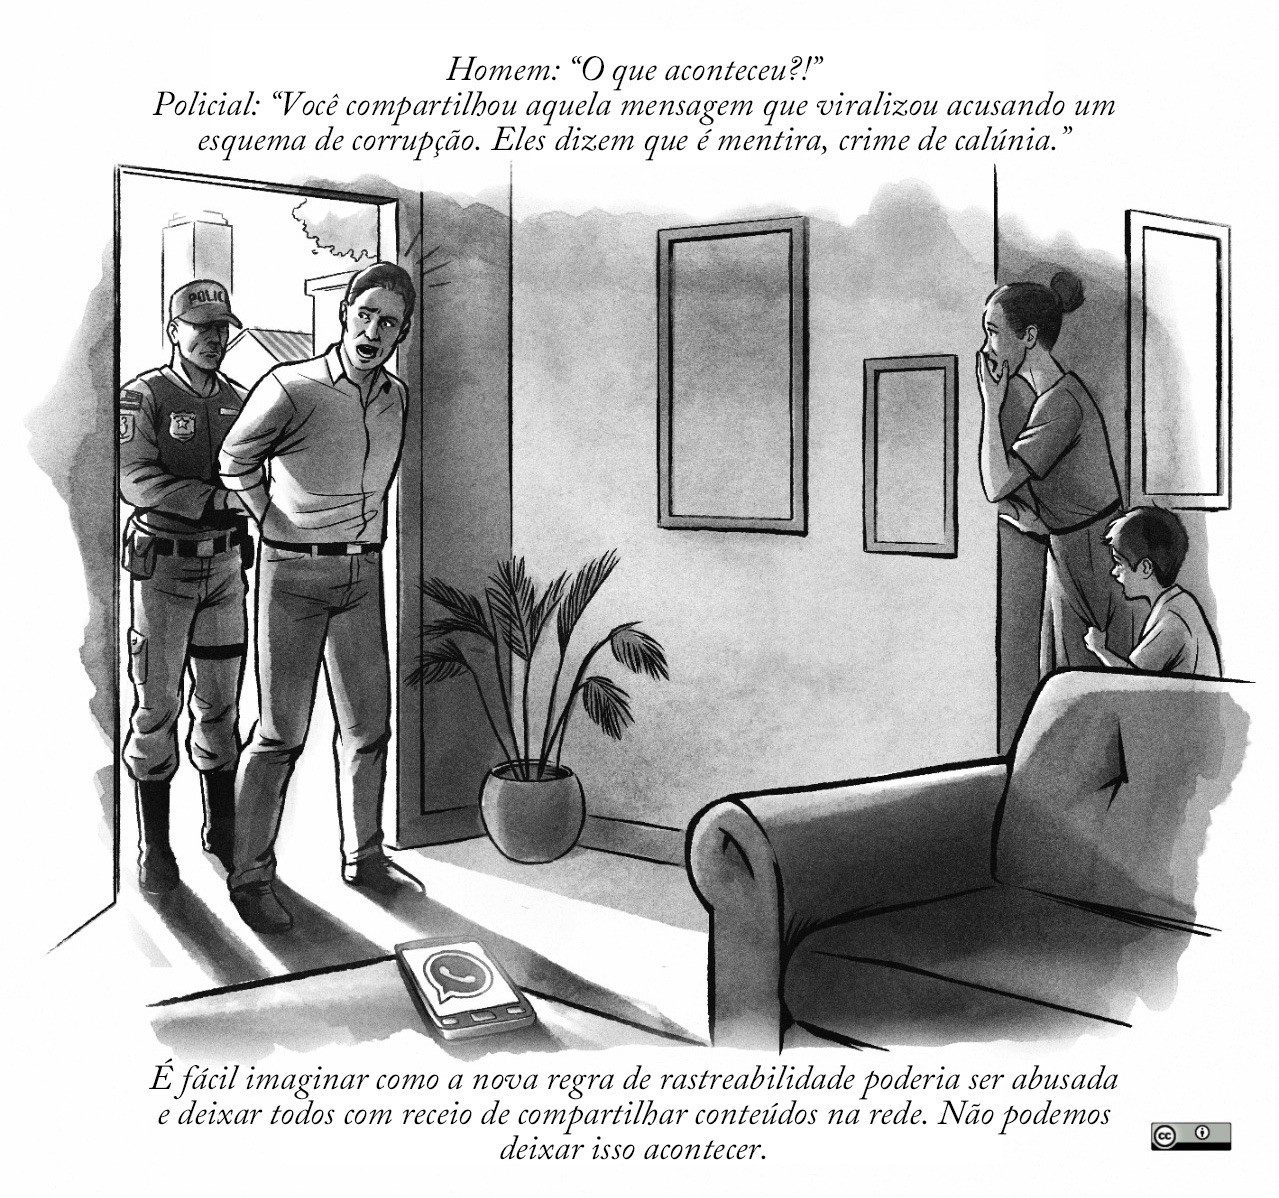 A Brazilian political cartoon of a man being arrested by a police officer in his home.